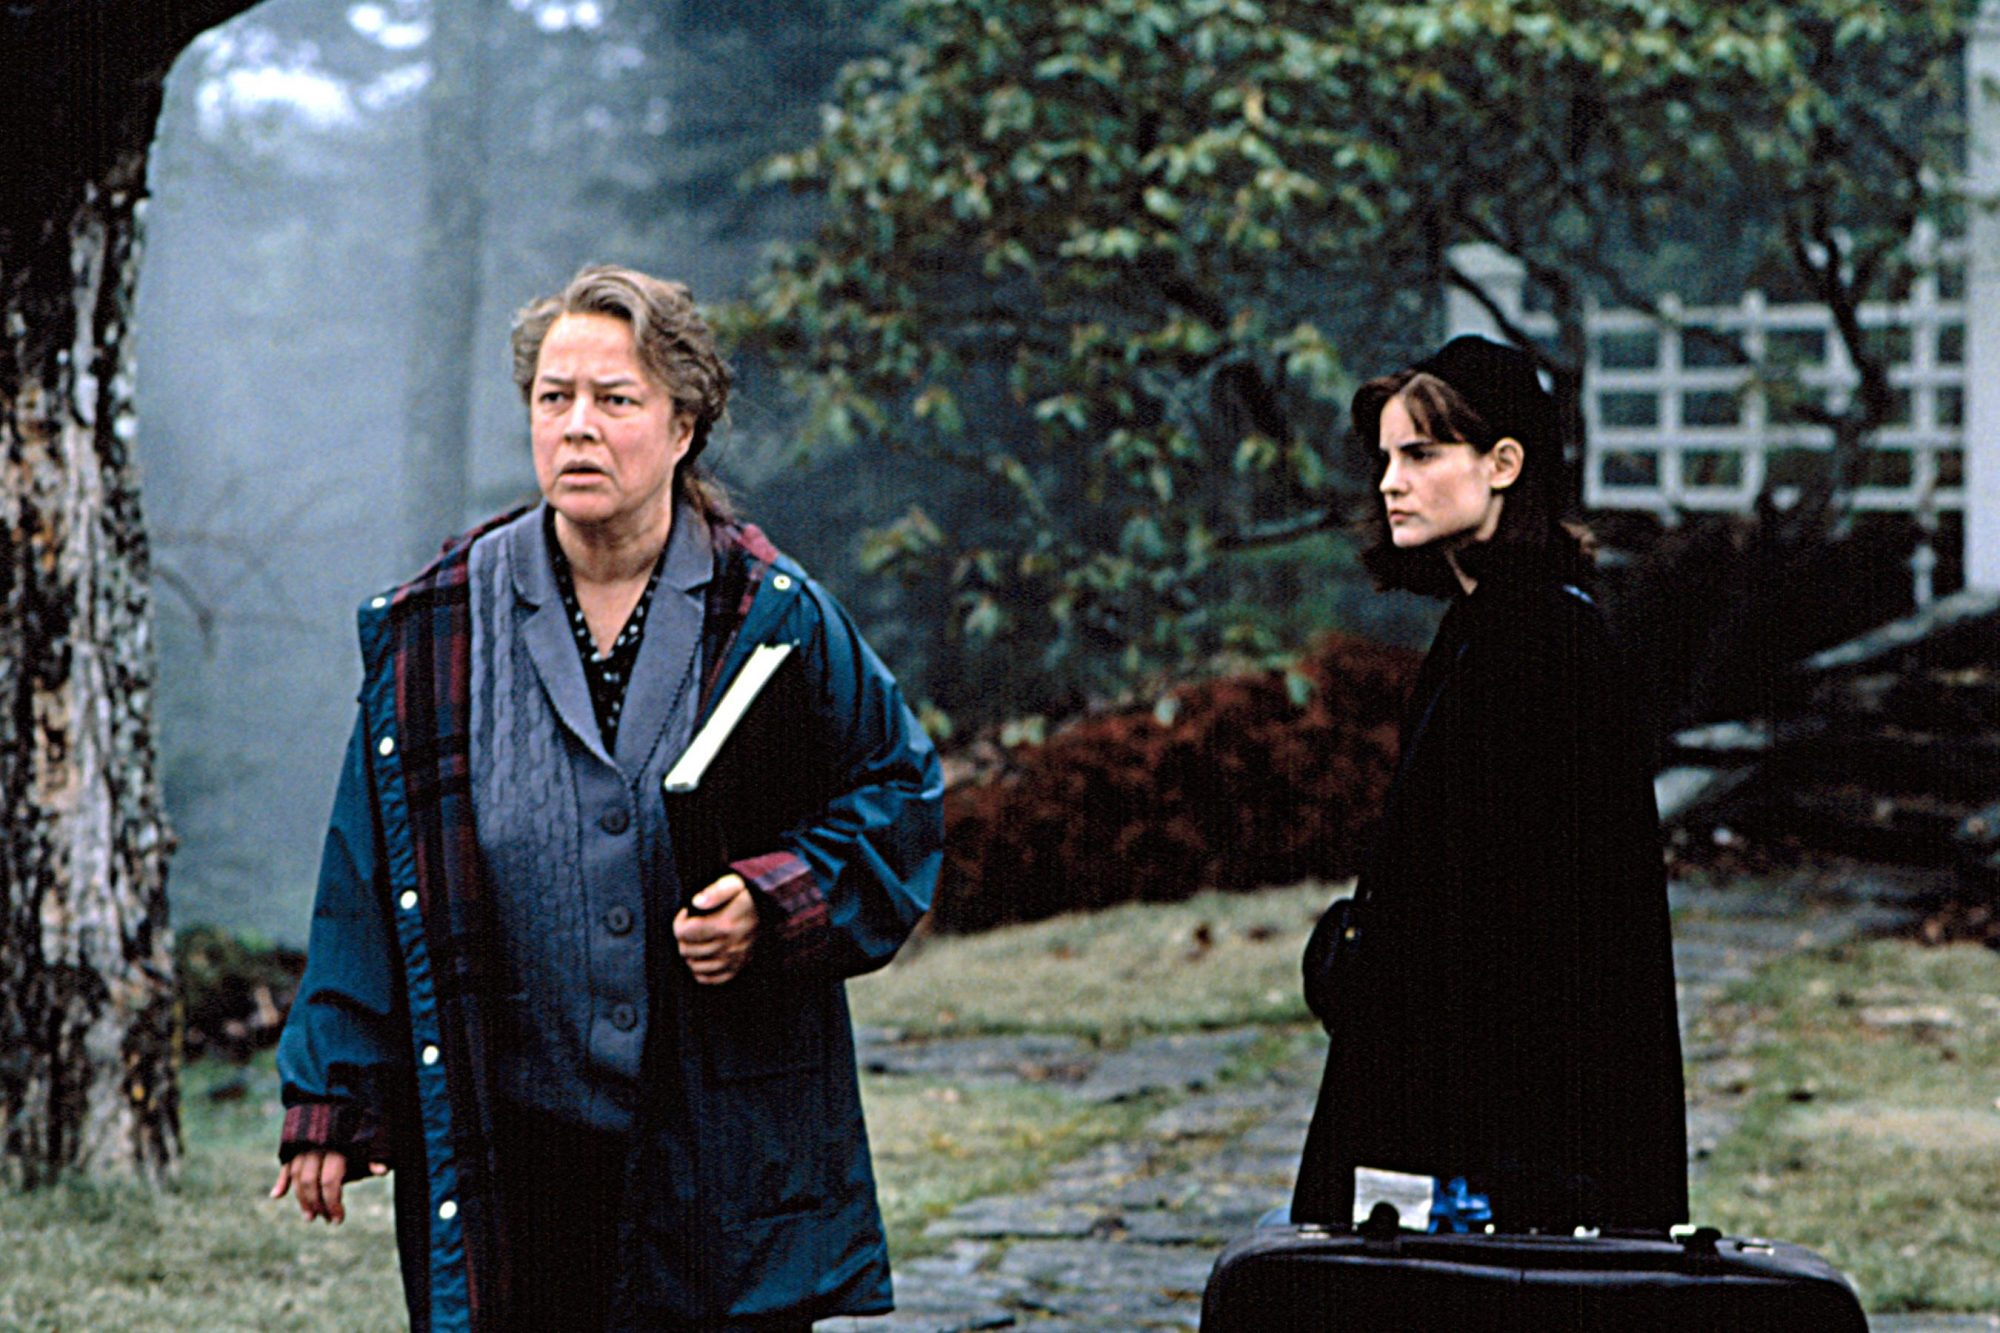 BEST: 8. Dolores Claiborne (1995)